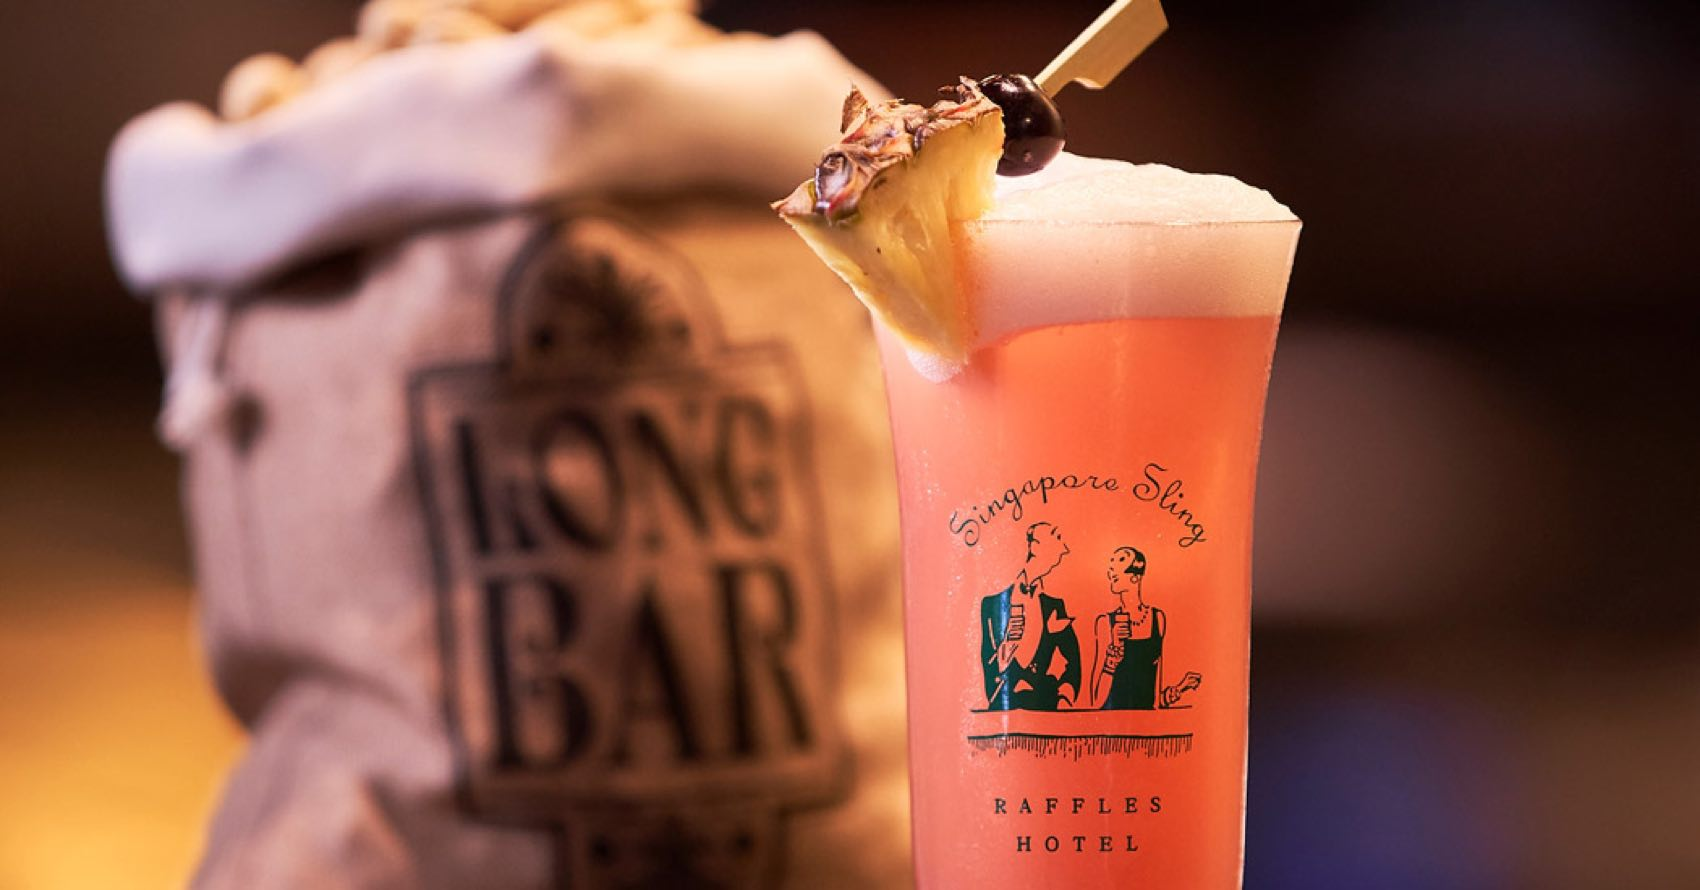 Singapore Sling gives a summer feel with a cooling and bitter-sweet after taste with an alcoholic content close to 7%.